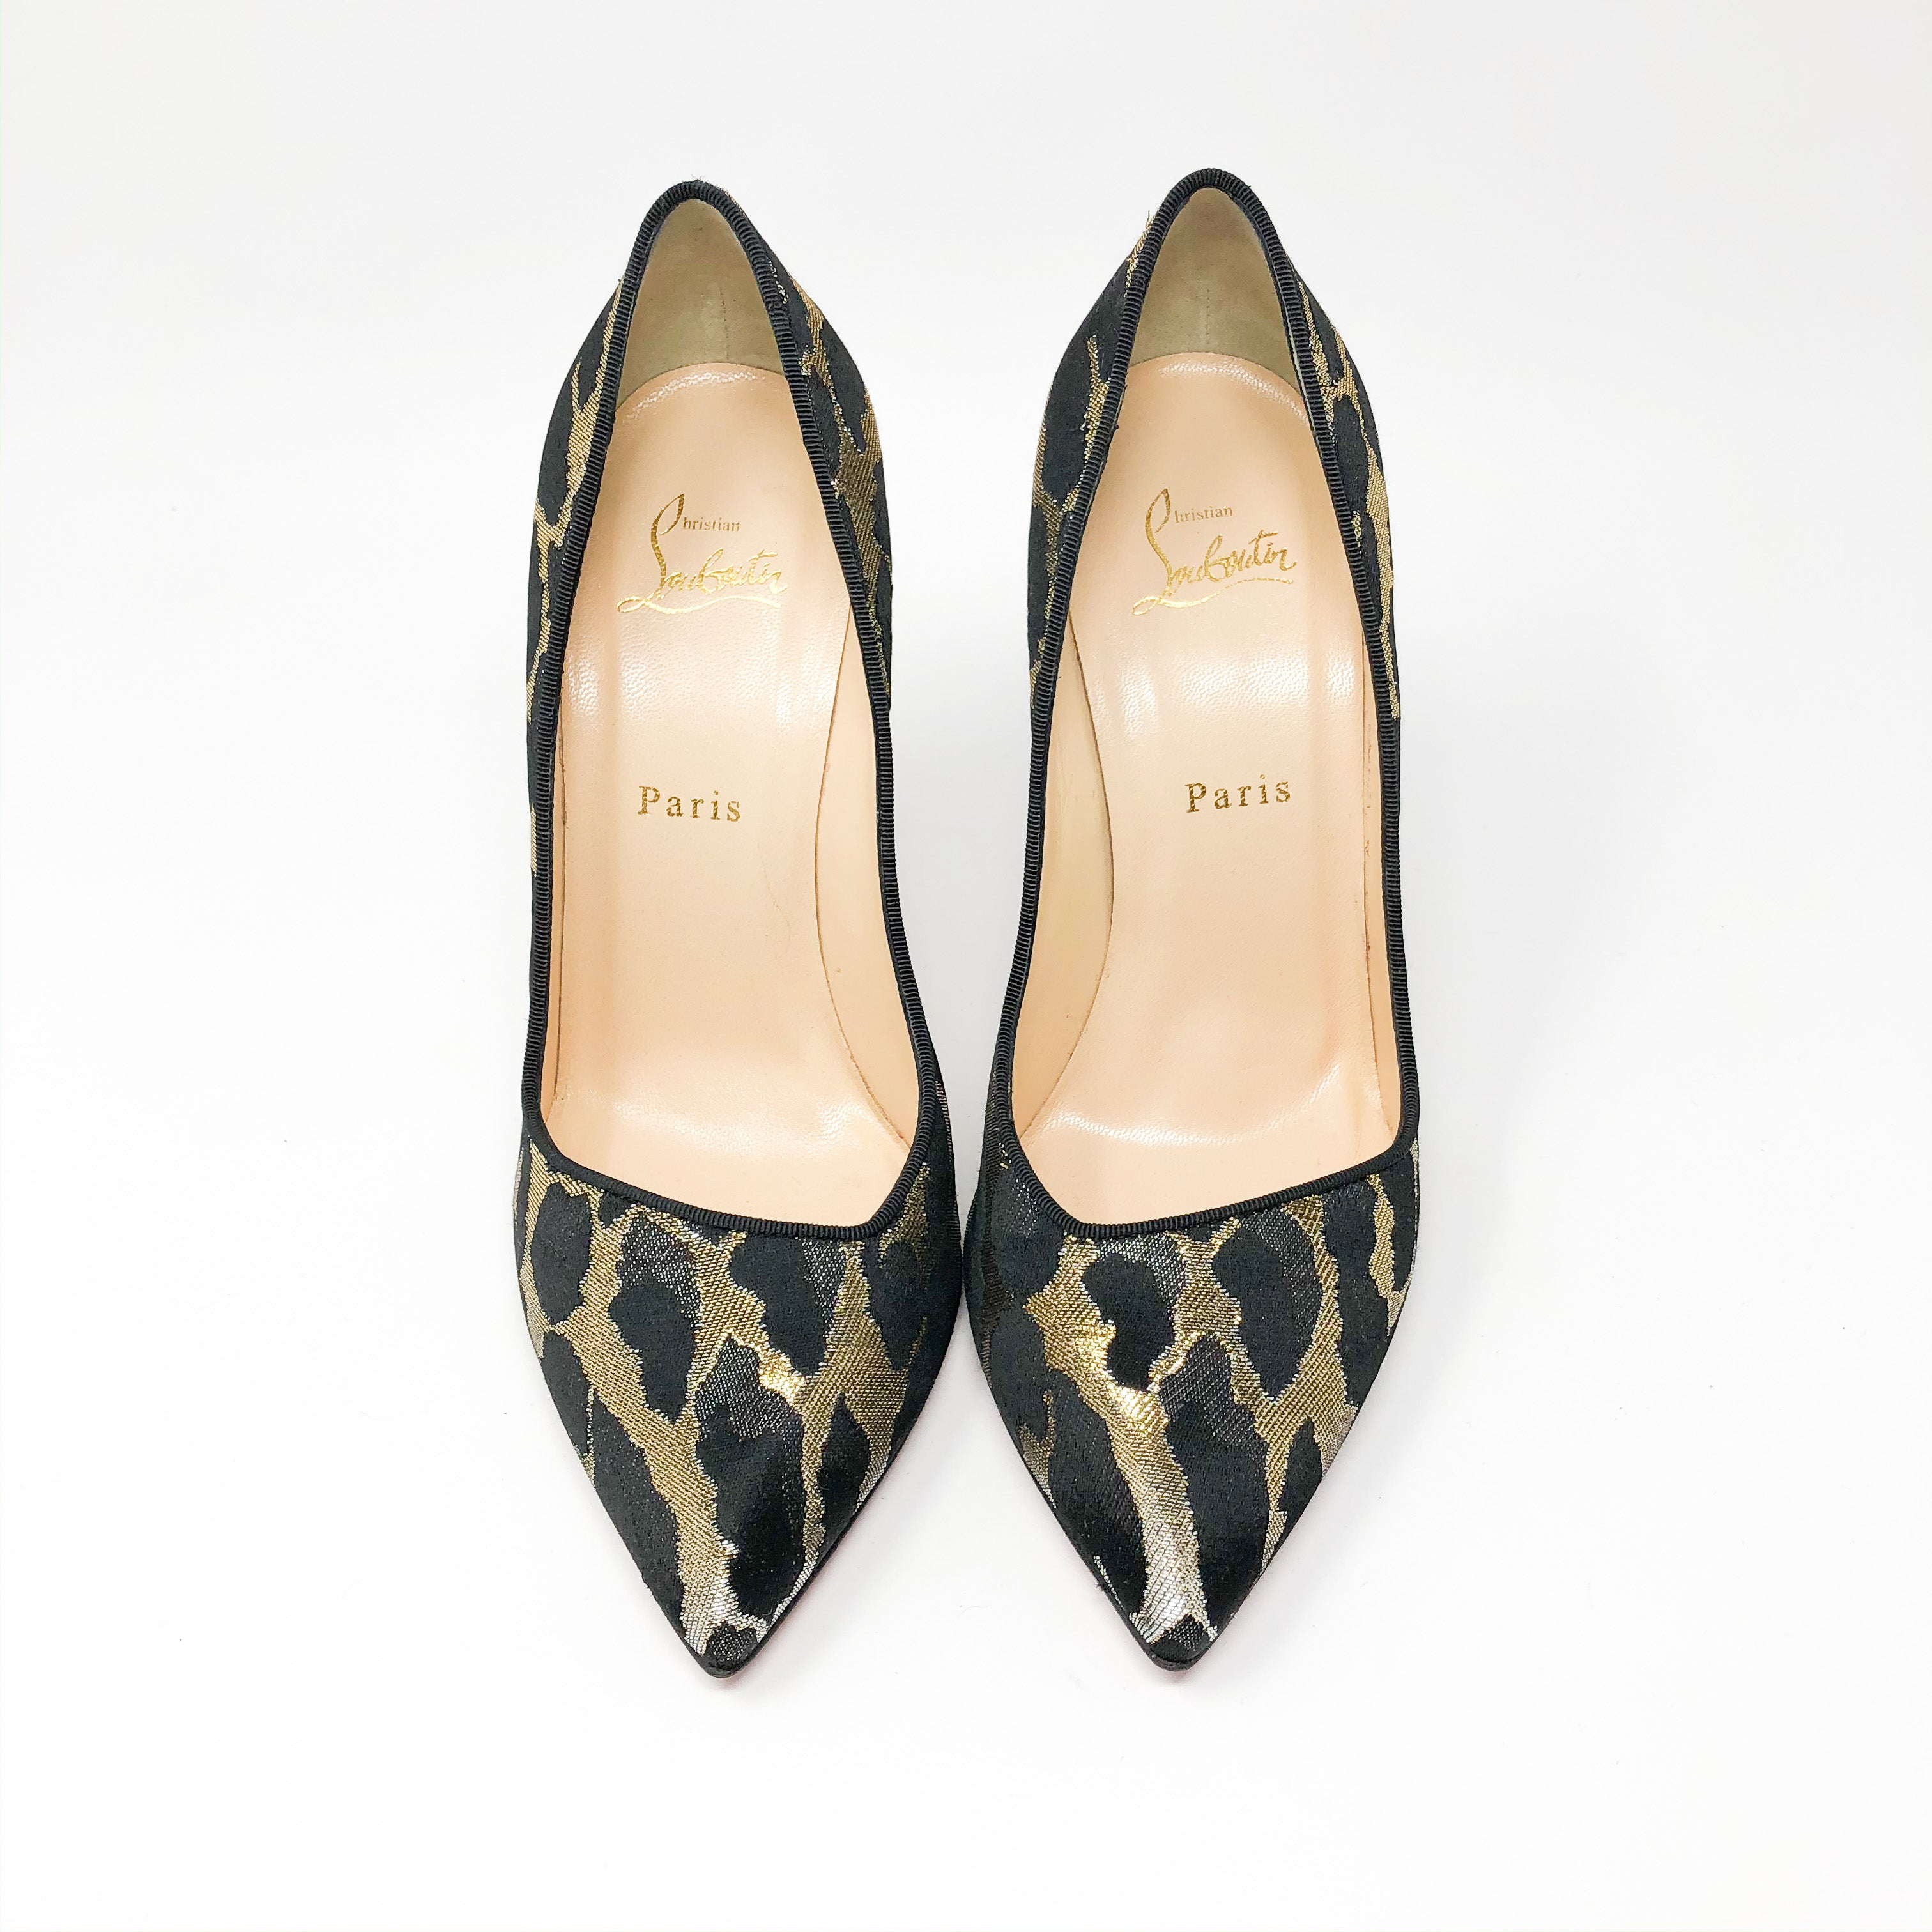 Pumps Christian Louboutin Corneille animal print